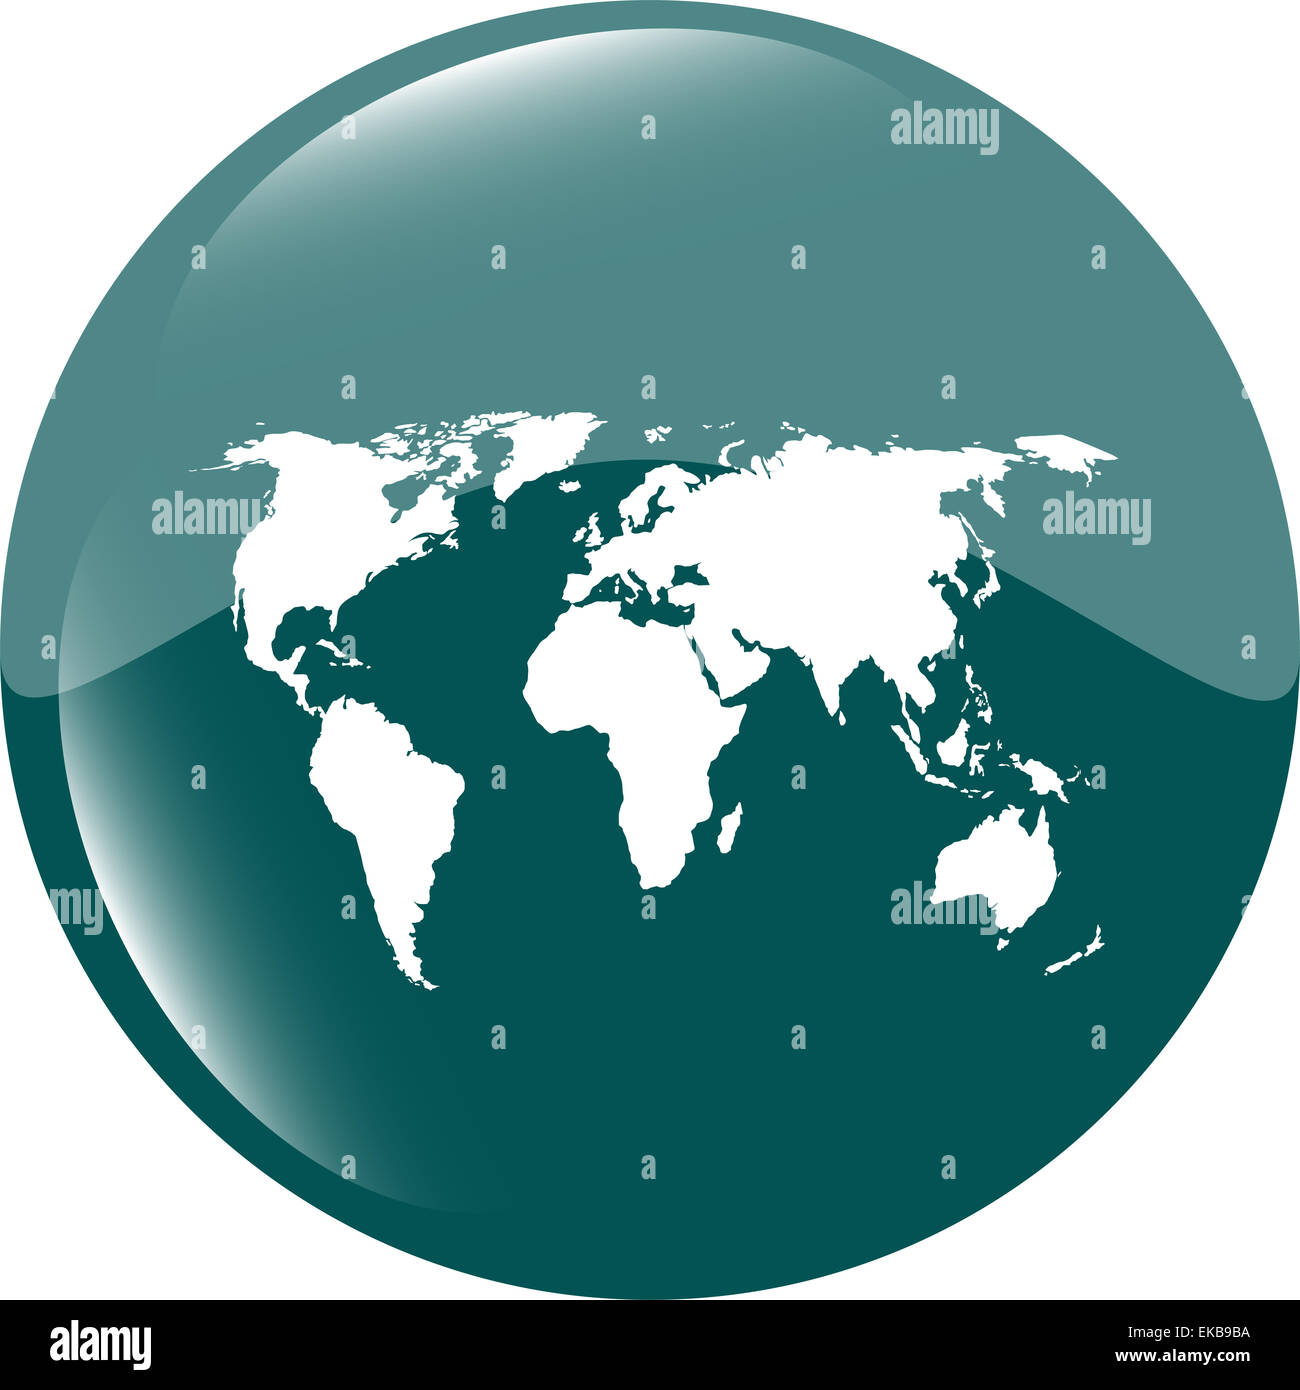 Globe icon earth world map on web button stock photo 80768782 alamy globe icon earth world map on web button gumiabroncs Gallery